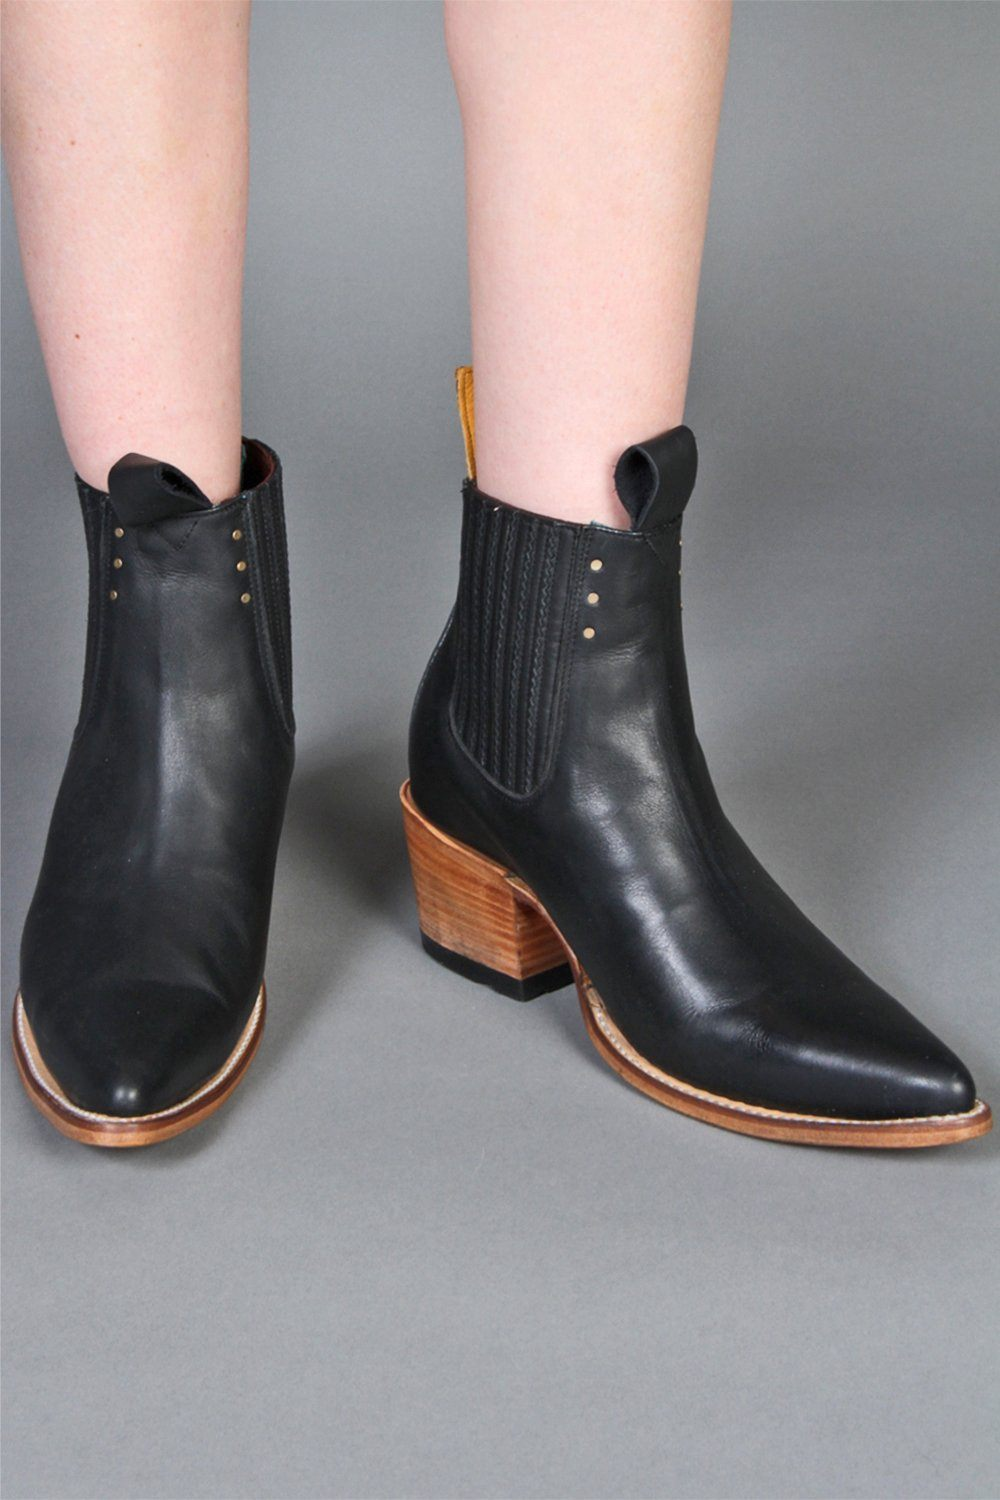 Black Freeway Chelsea Boots by PSKaufman, shoes, pskaufman